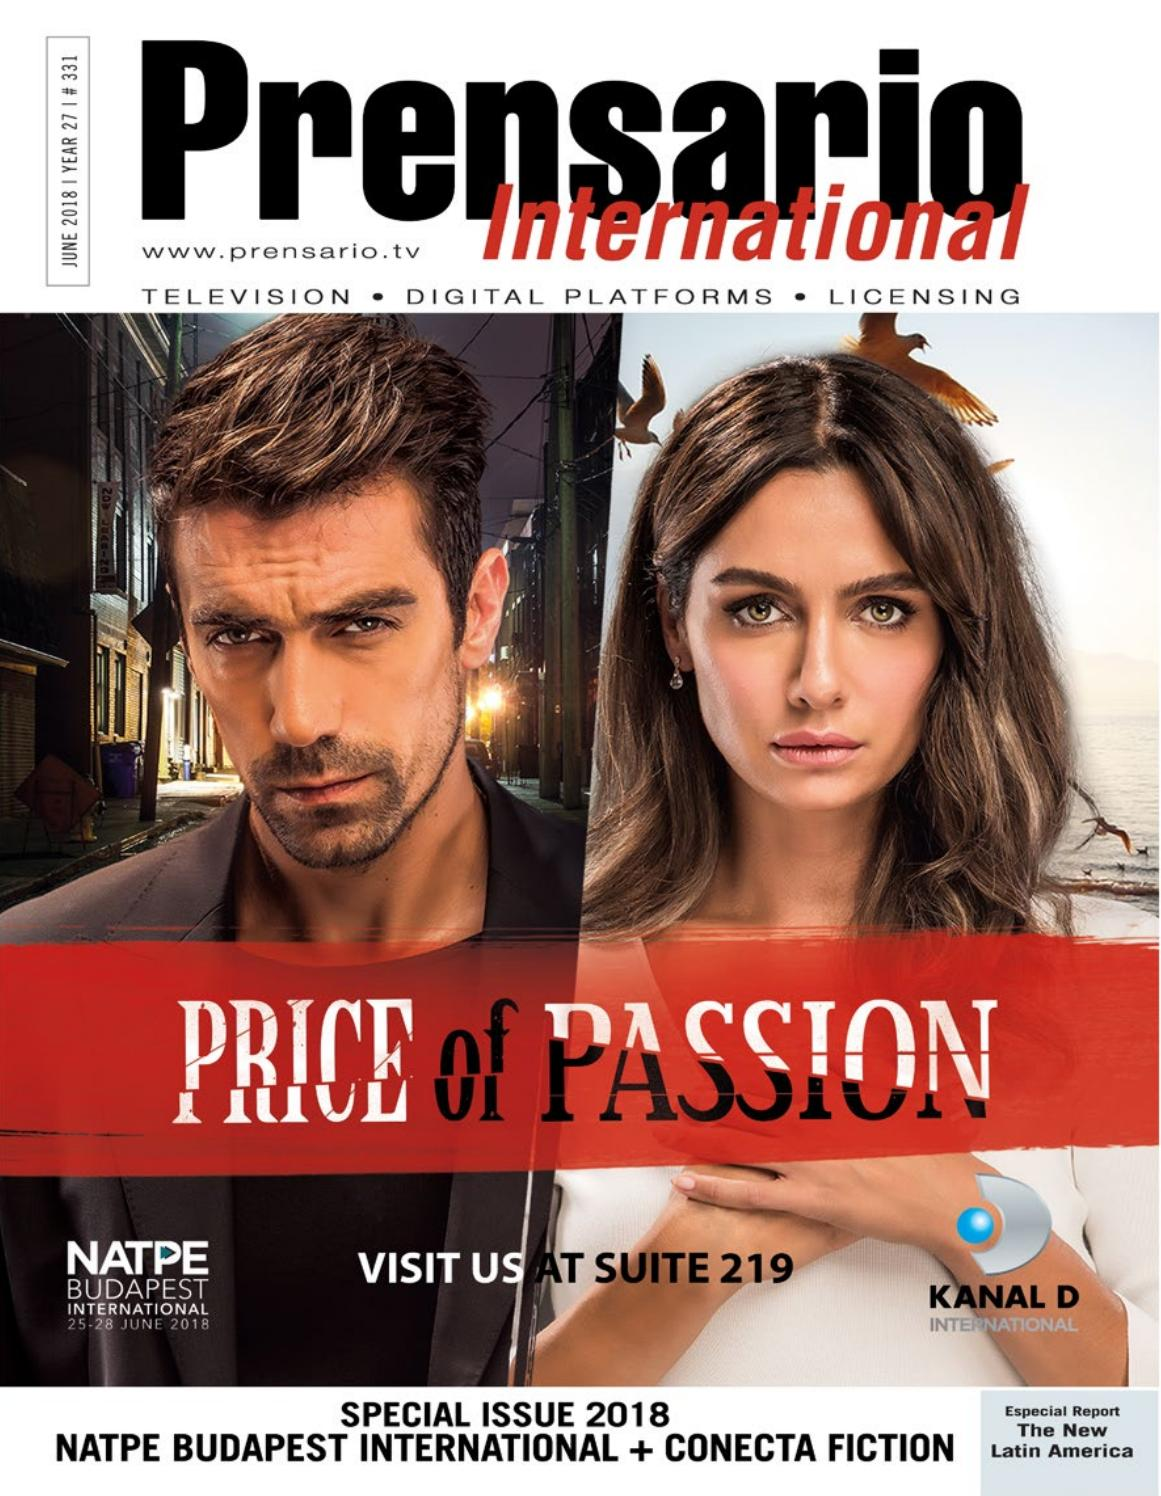 Special Issue Natpe Budapest 2018 By Prensario Issuu